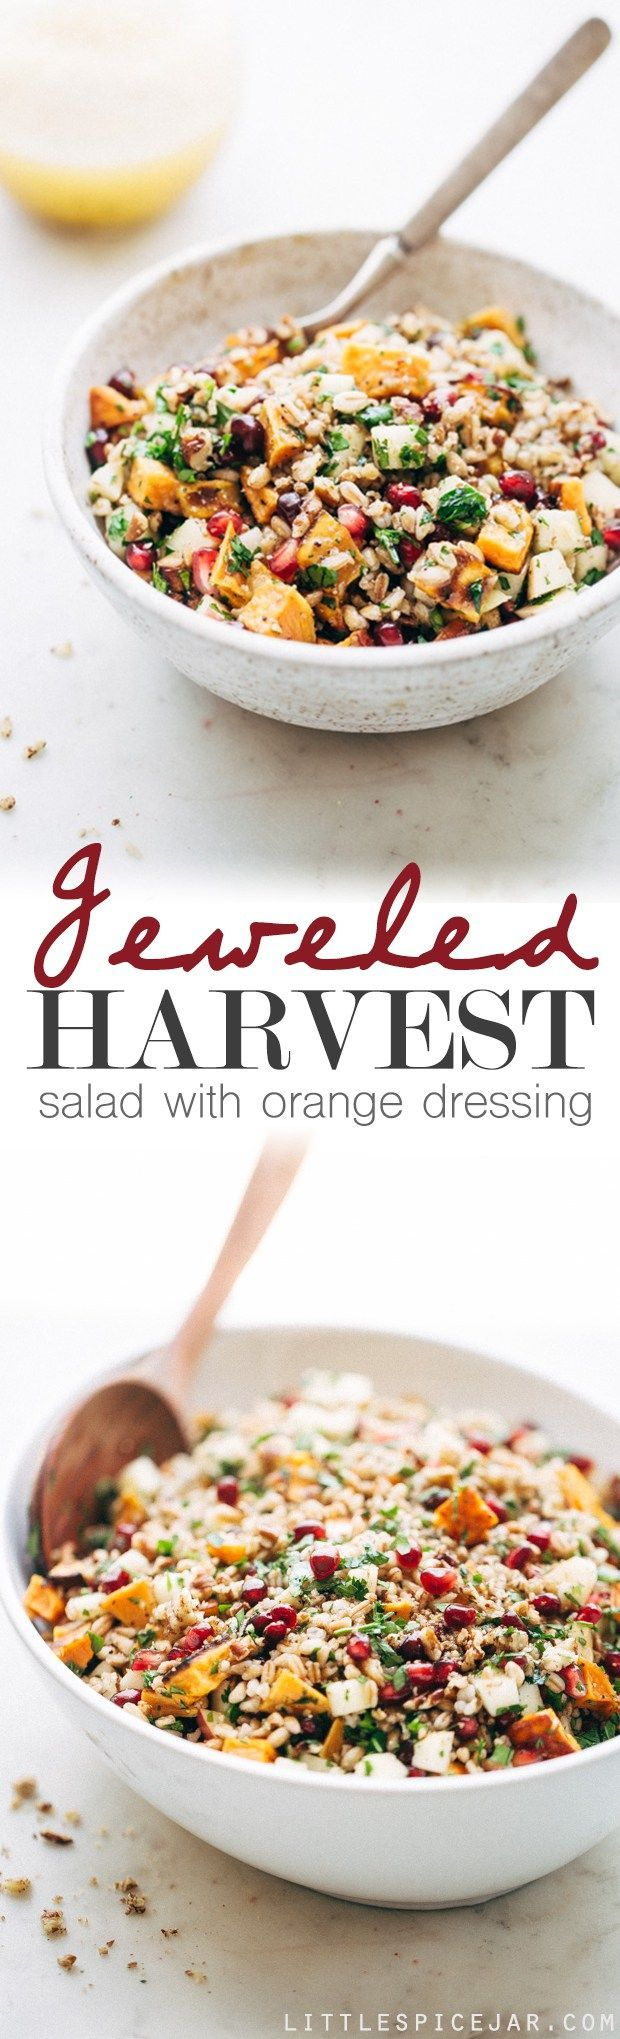 Jeweled Harvest Salad with Orange Dressing - A simple salad with tons of topping possibilities, drizzled with a simple orange dressing that makes the whole thing pop! #harvestsalad #salad #autumnsalad #ad | http://Littlespicejar.com